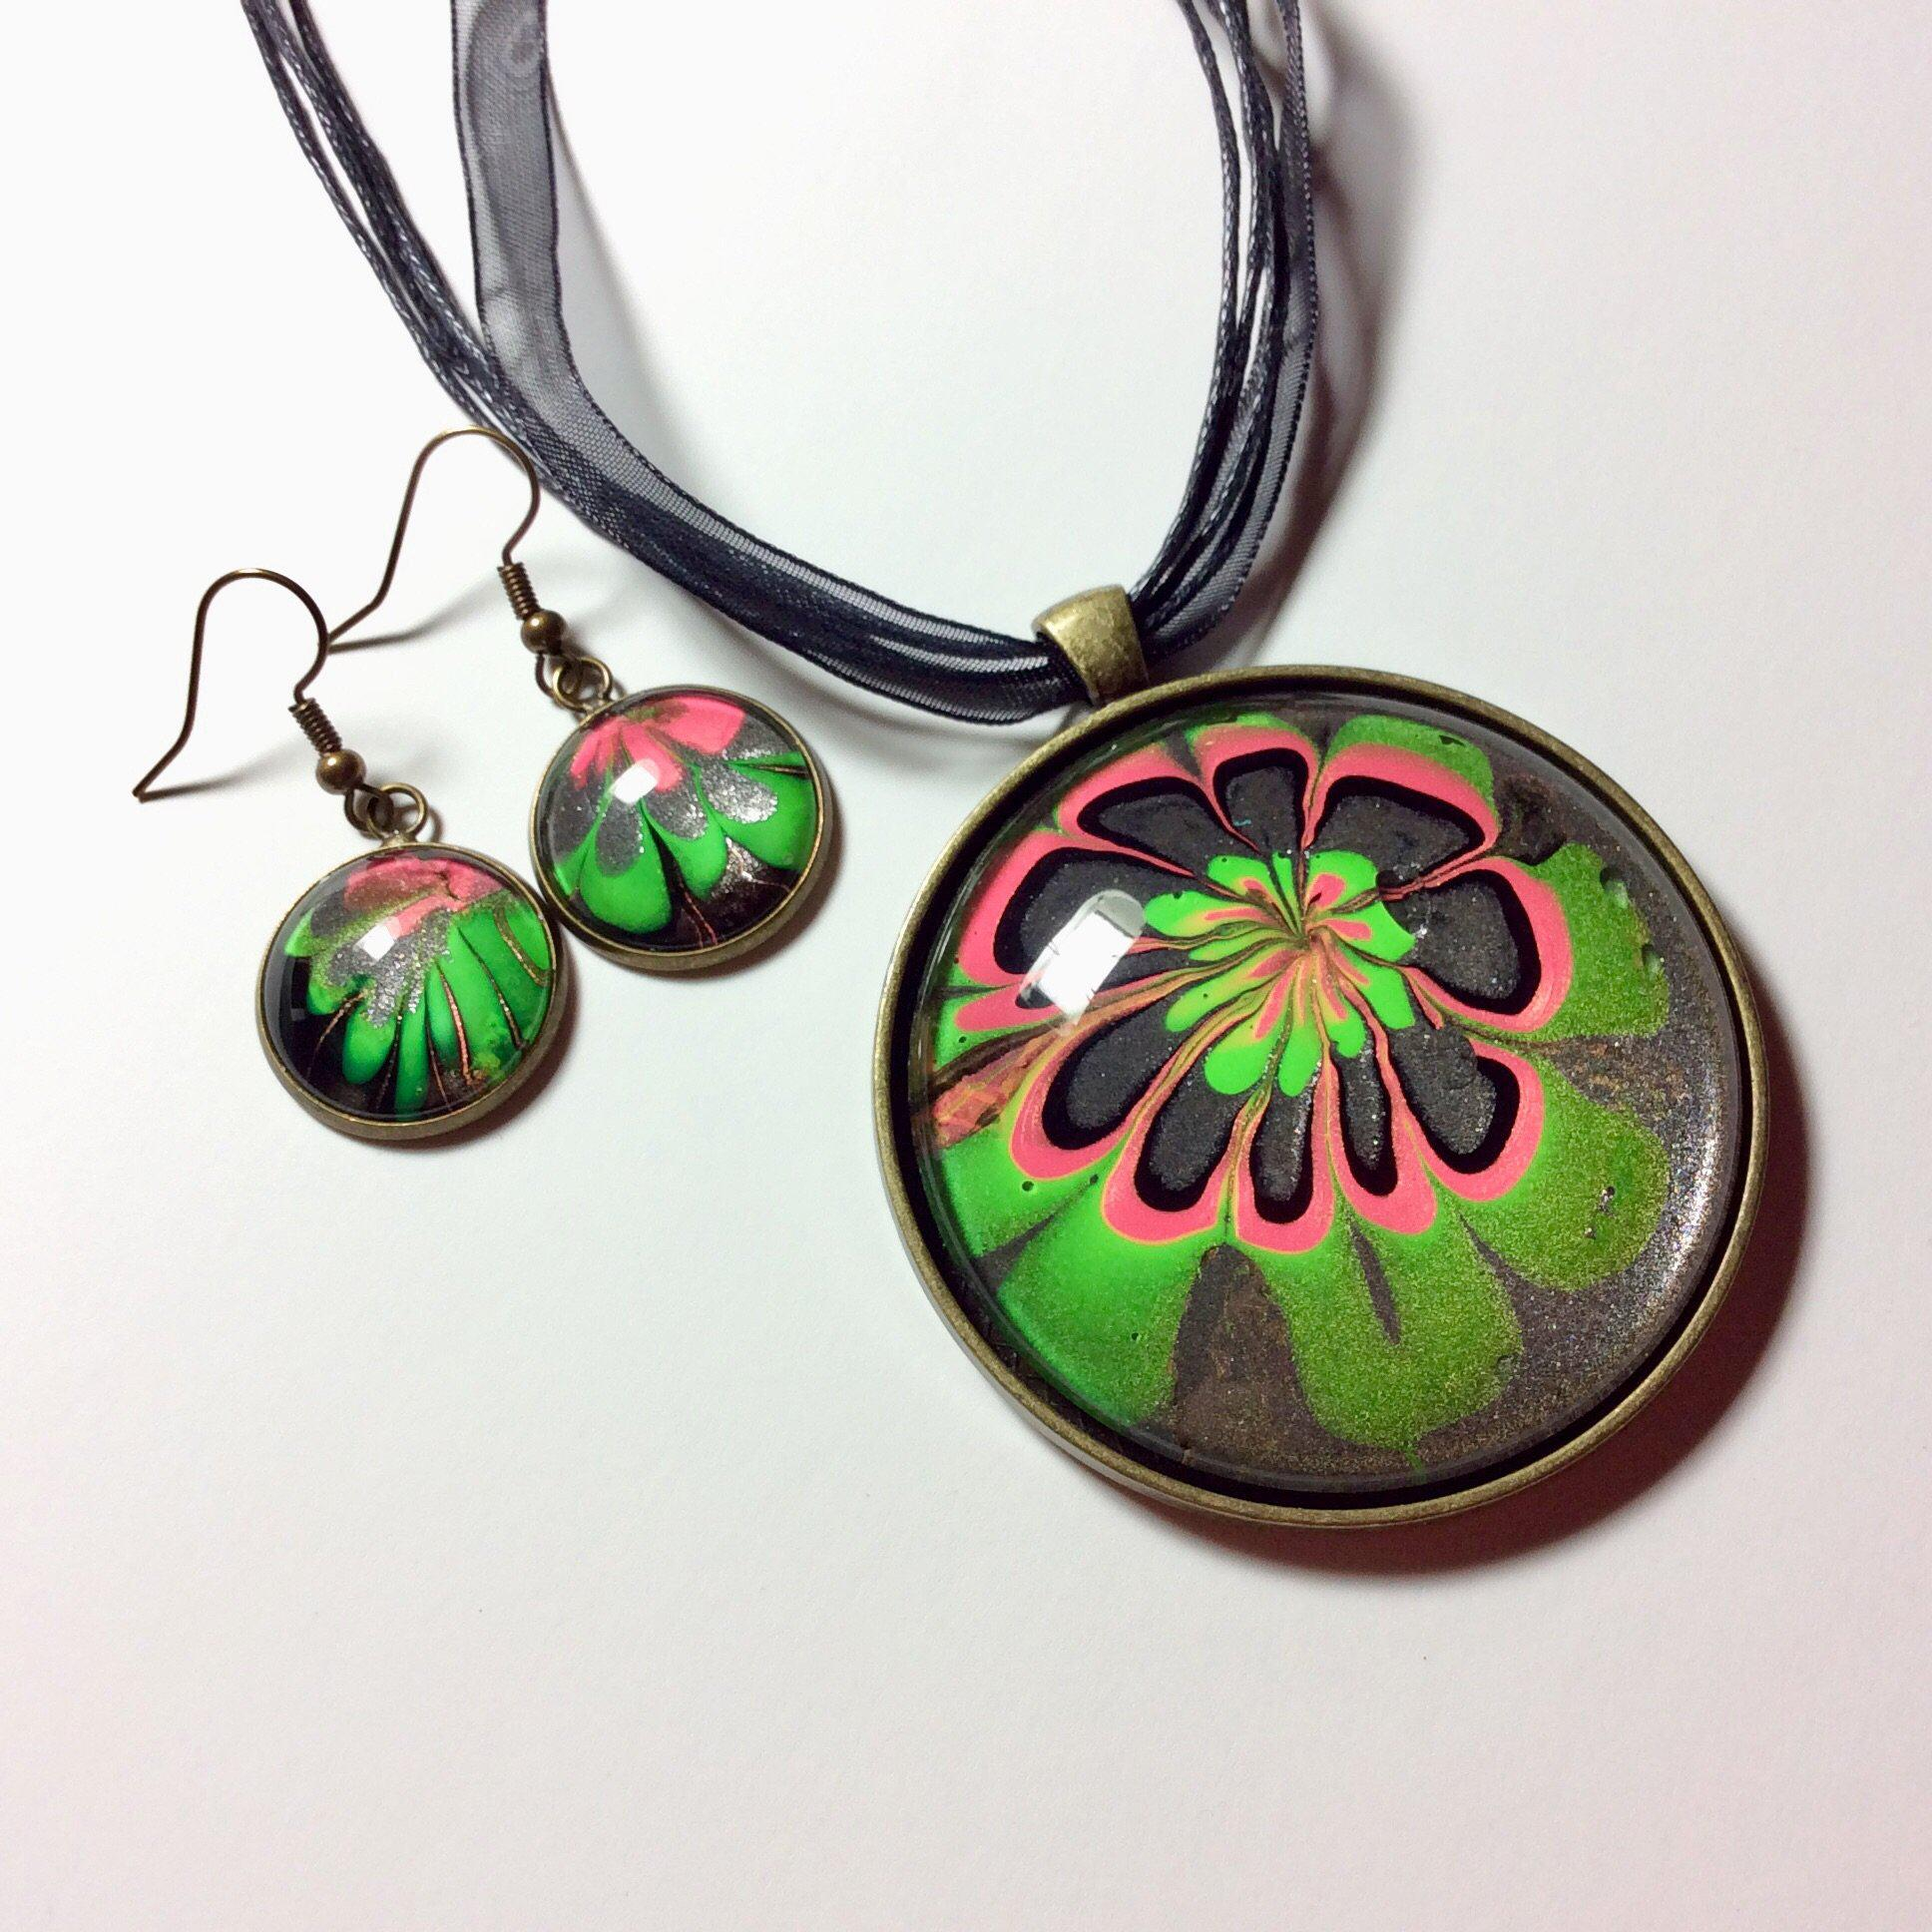 Pendant Necklace and Earring Set, Neon Pink & Green Floral